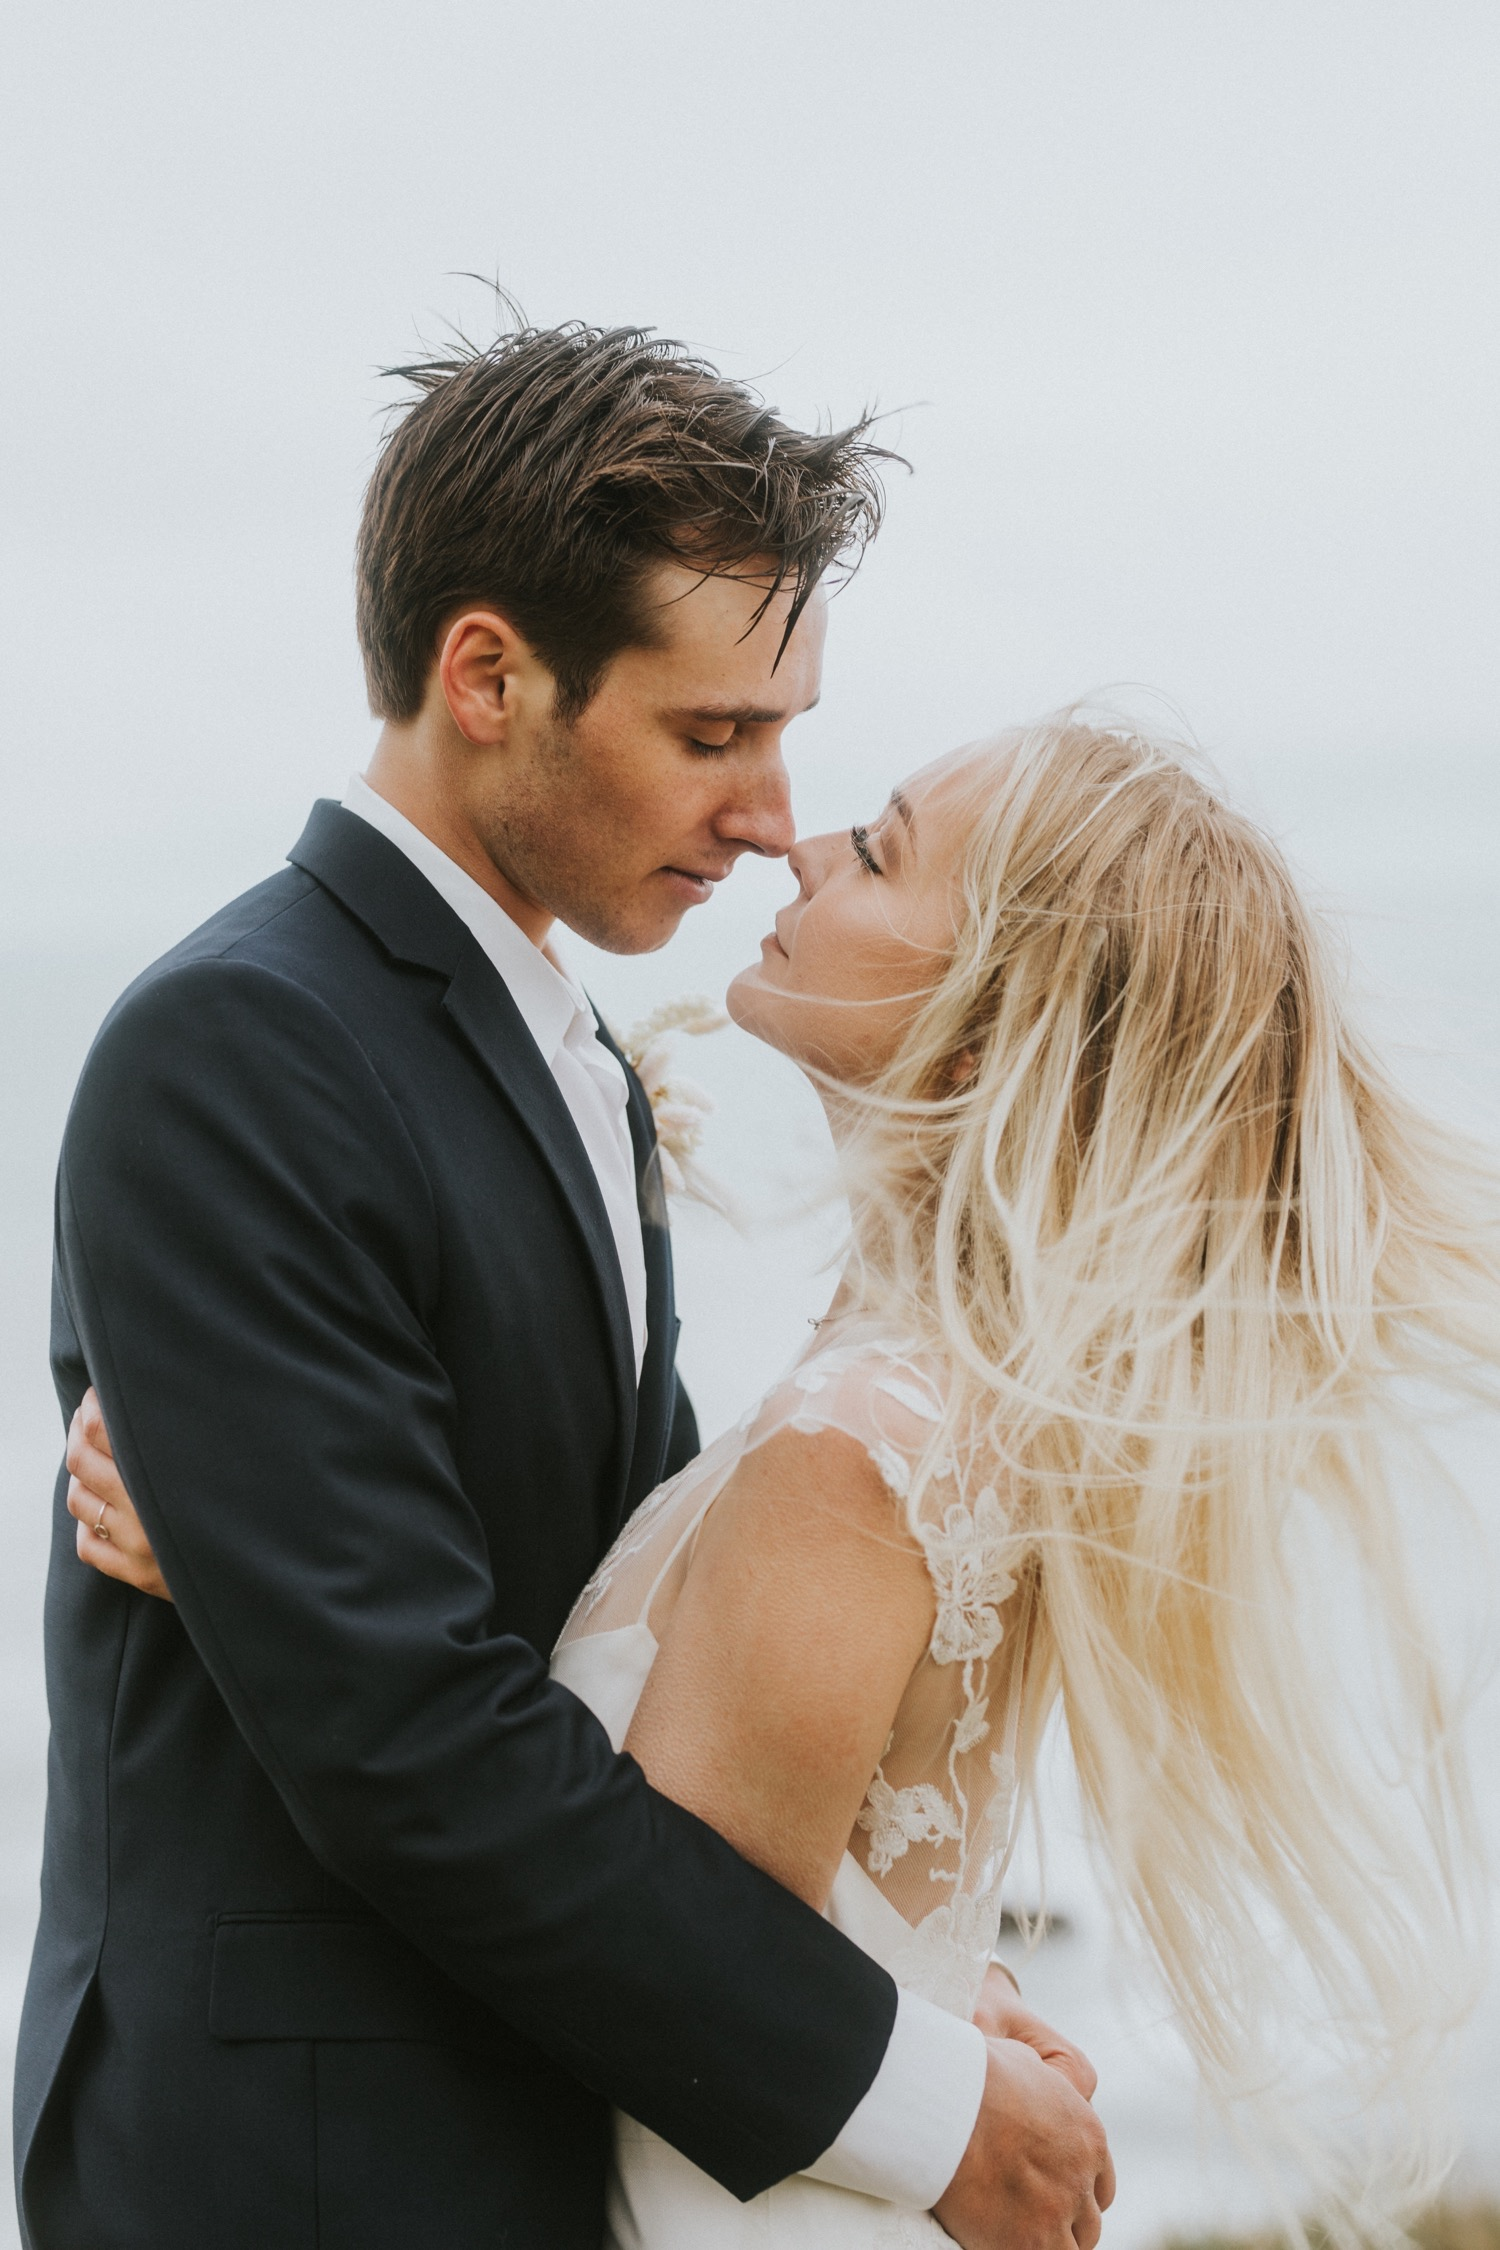 Portland Wedding Photographer, Ecola State Park, Oregon Wedding Photographer, Hudson Valley Wedding Photographer, Ecola State Park Elopement